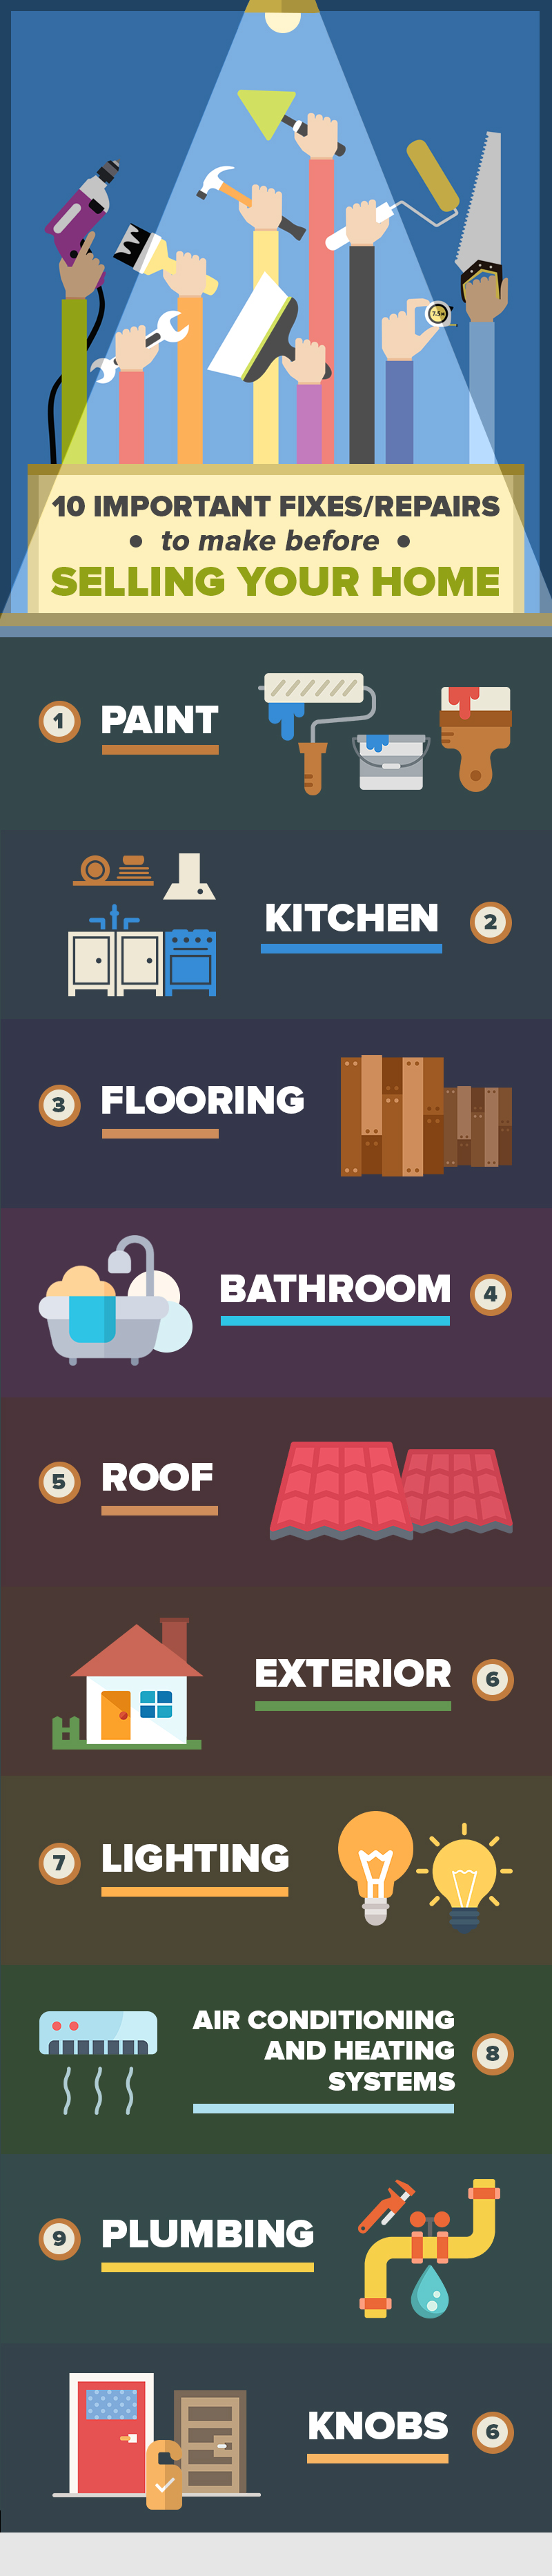 10 Important Fixes/Repairs To Make Before Selling Your Home